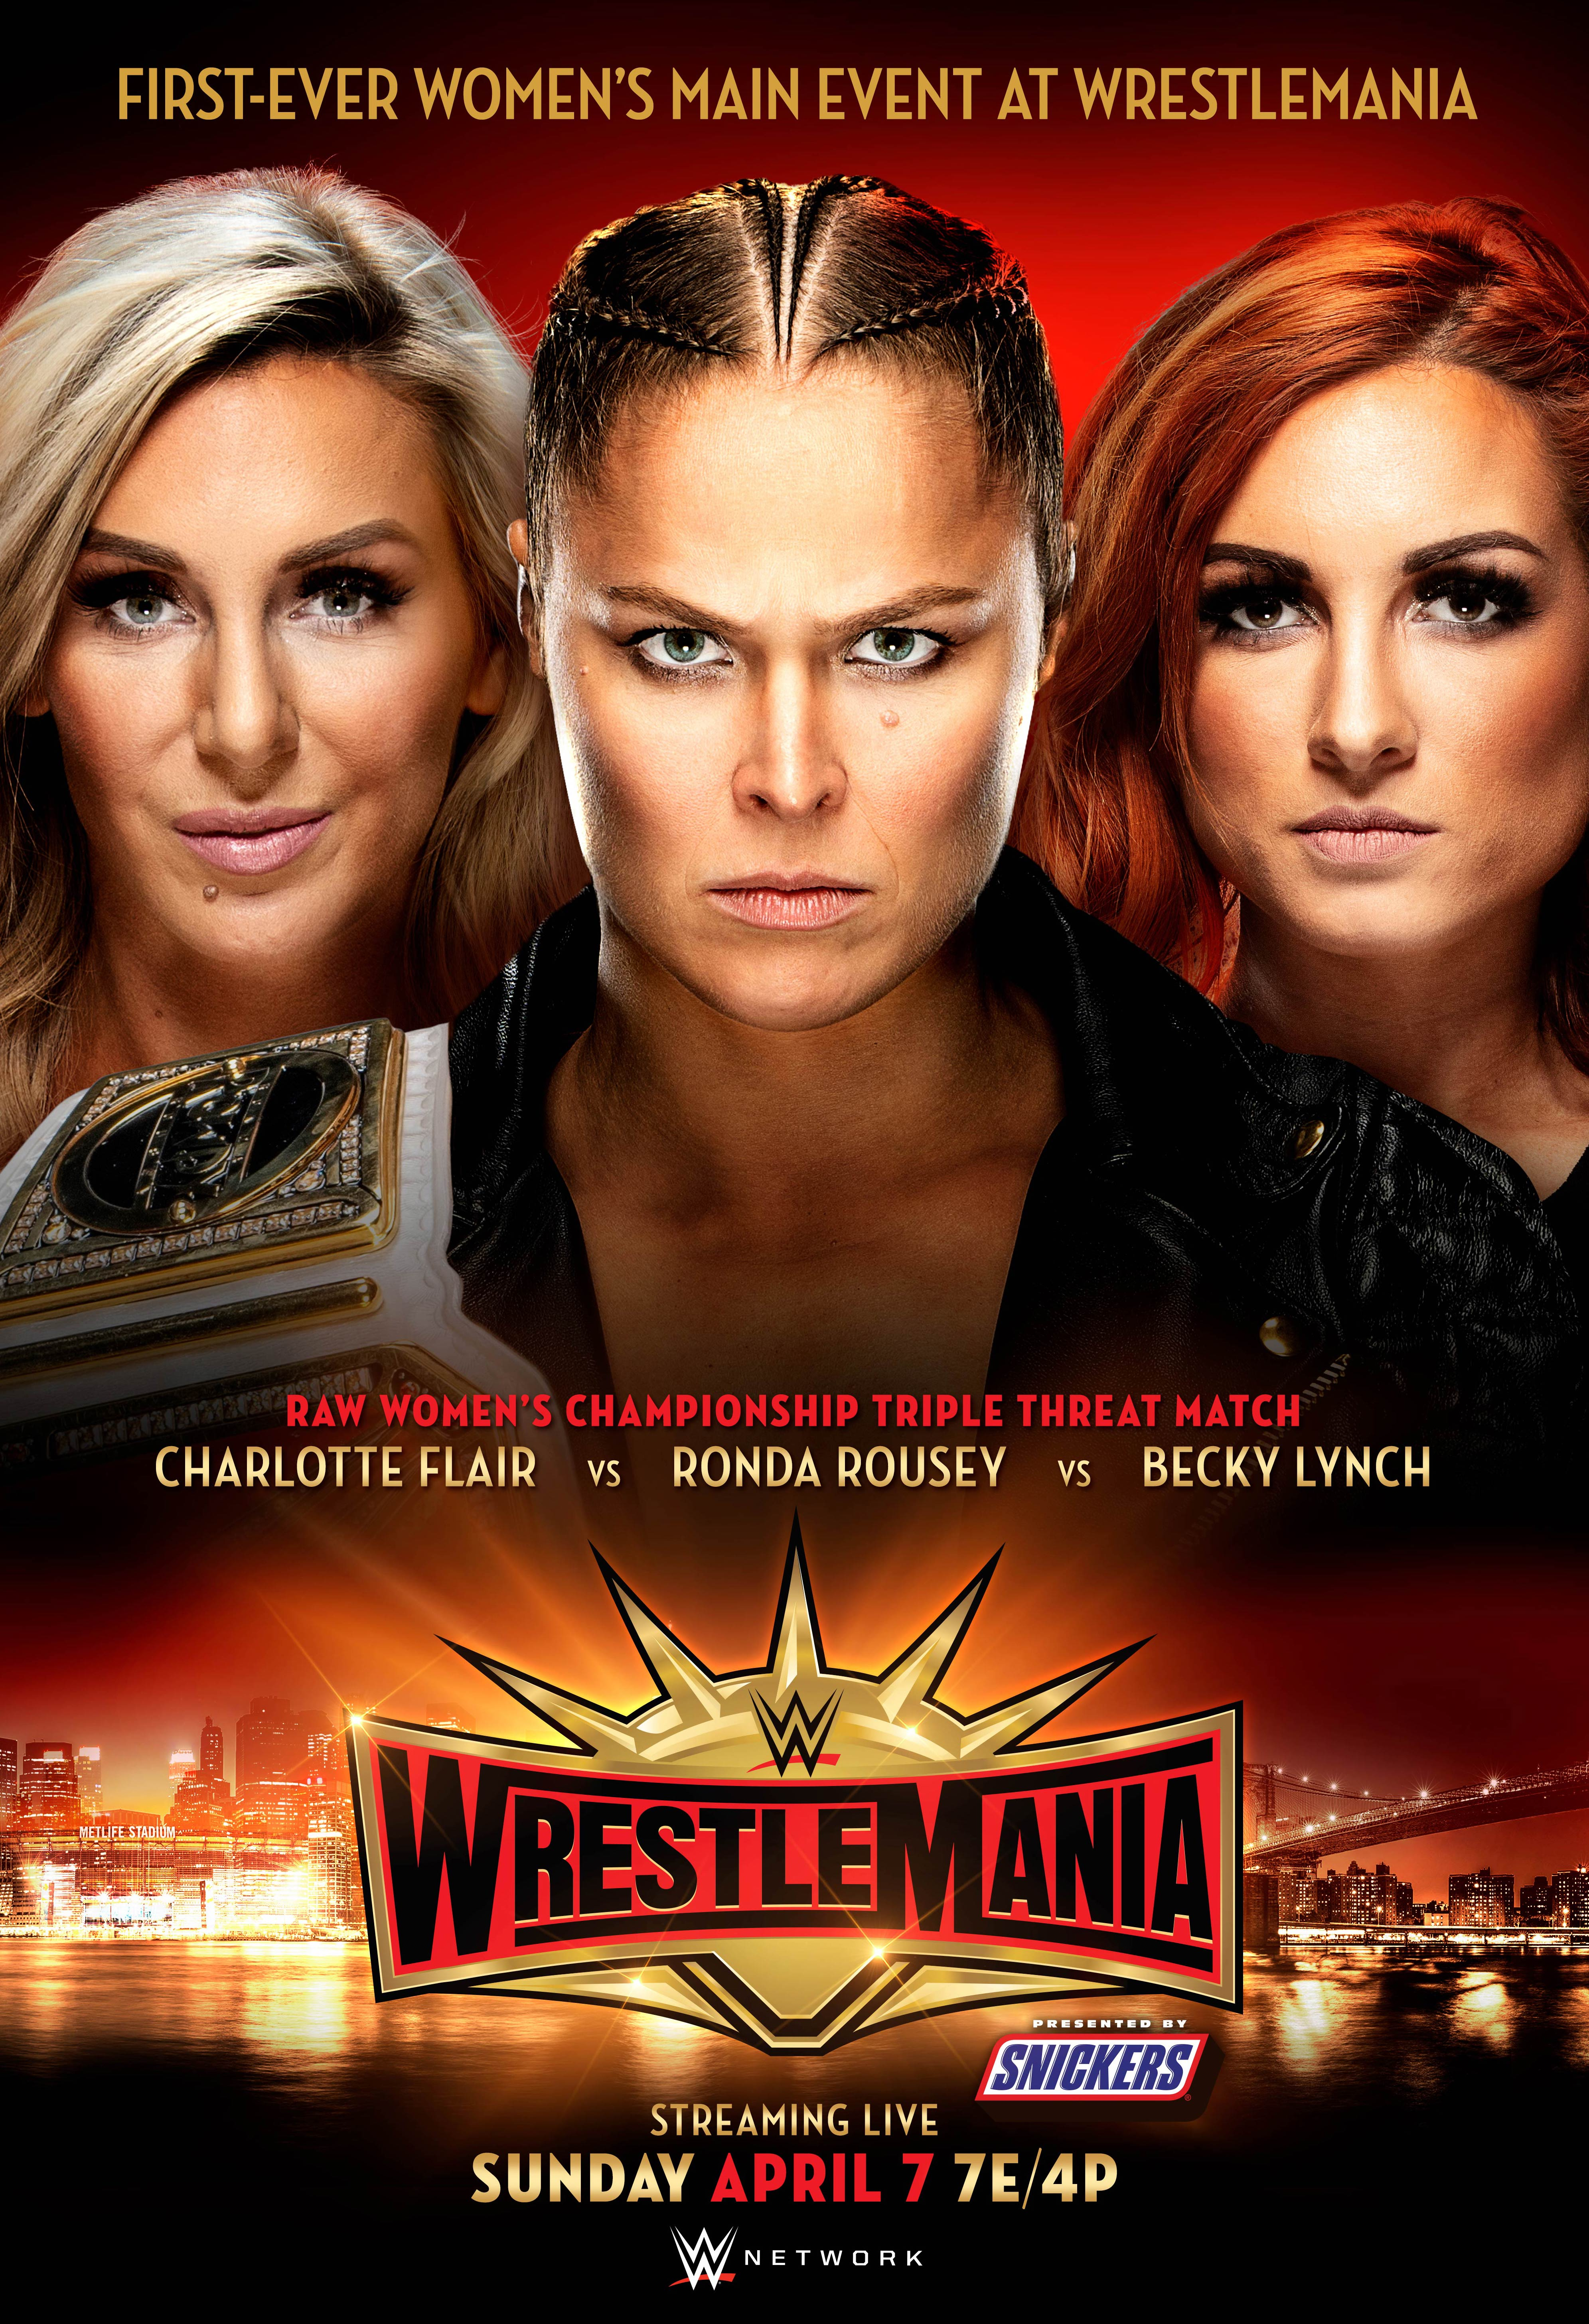 A graphic provided by WWE for the main event of WrestleMania 35, featuring Charlotte Flair, Ronda Rousey and Becky Lynch.